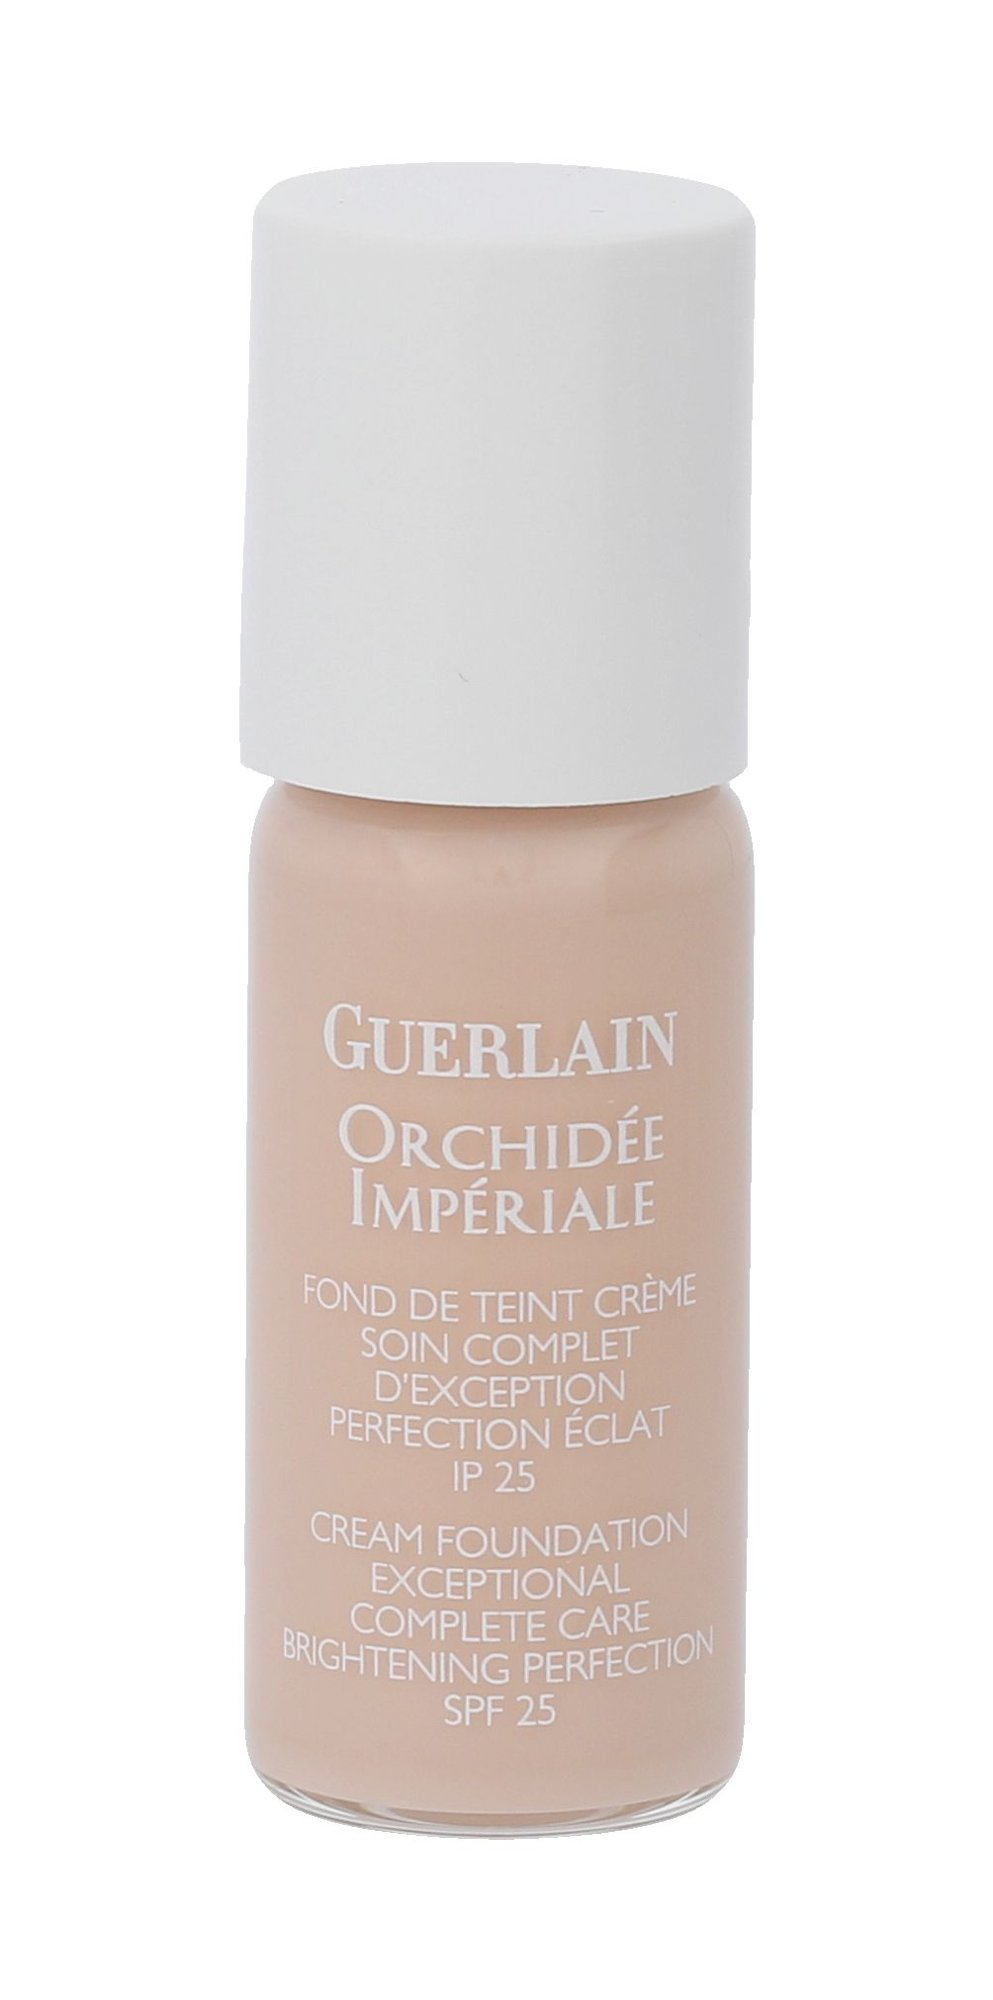 Guerlain Orchidée Impériale Cosmetic 10ml 11 Rose Pale Cream Foundation SPF25